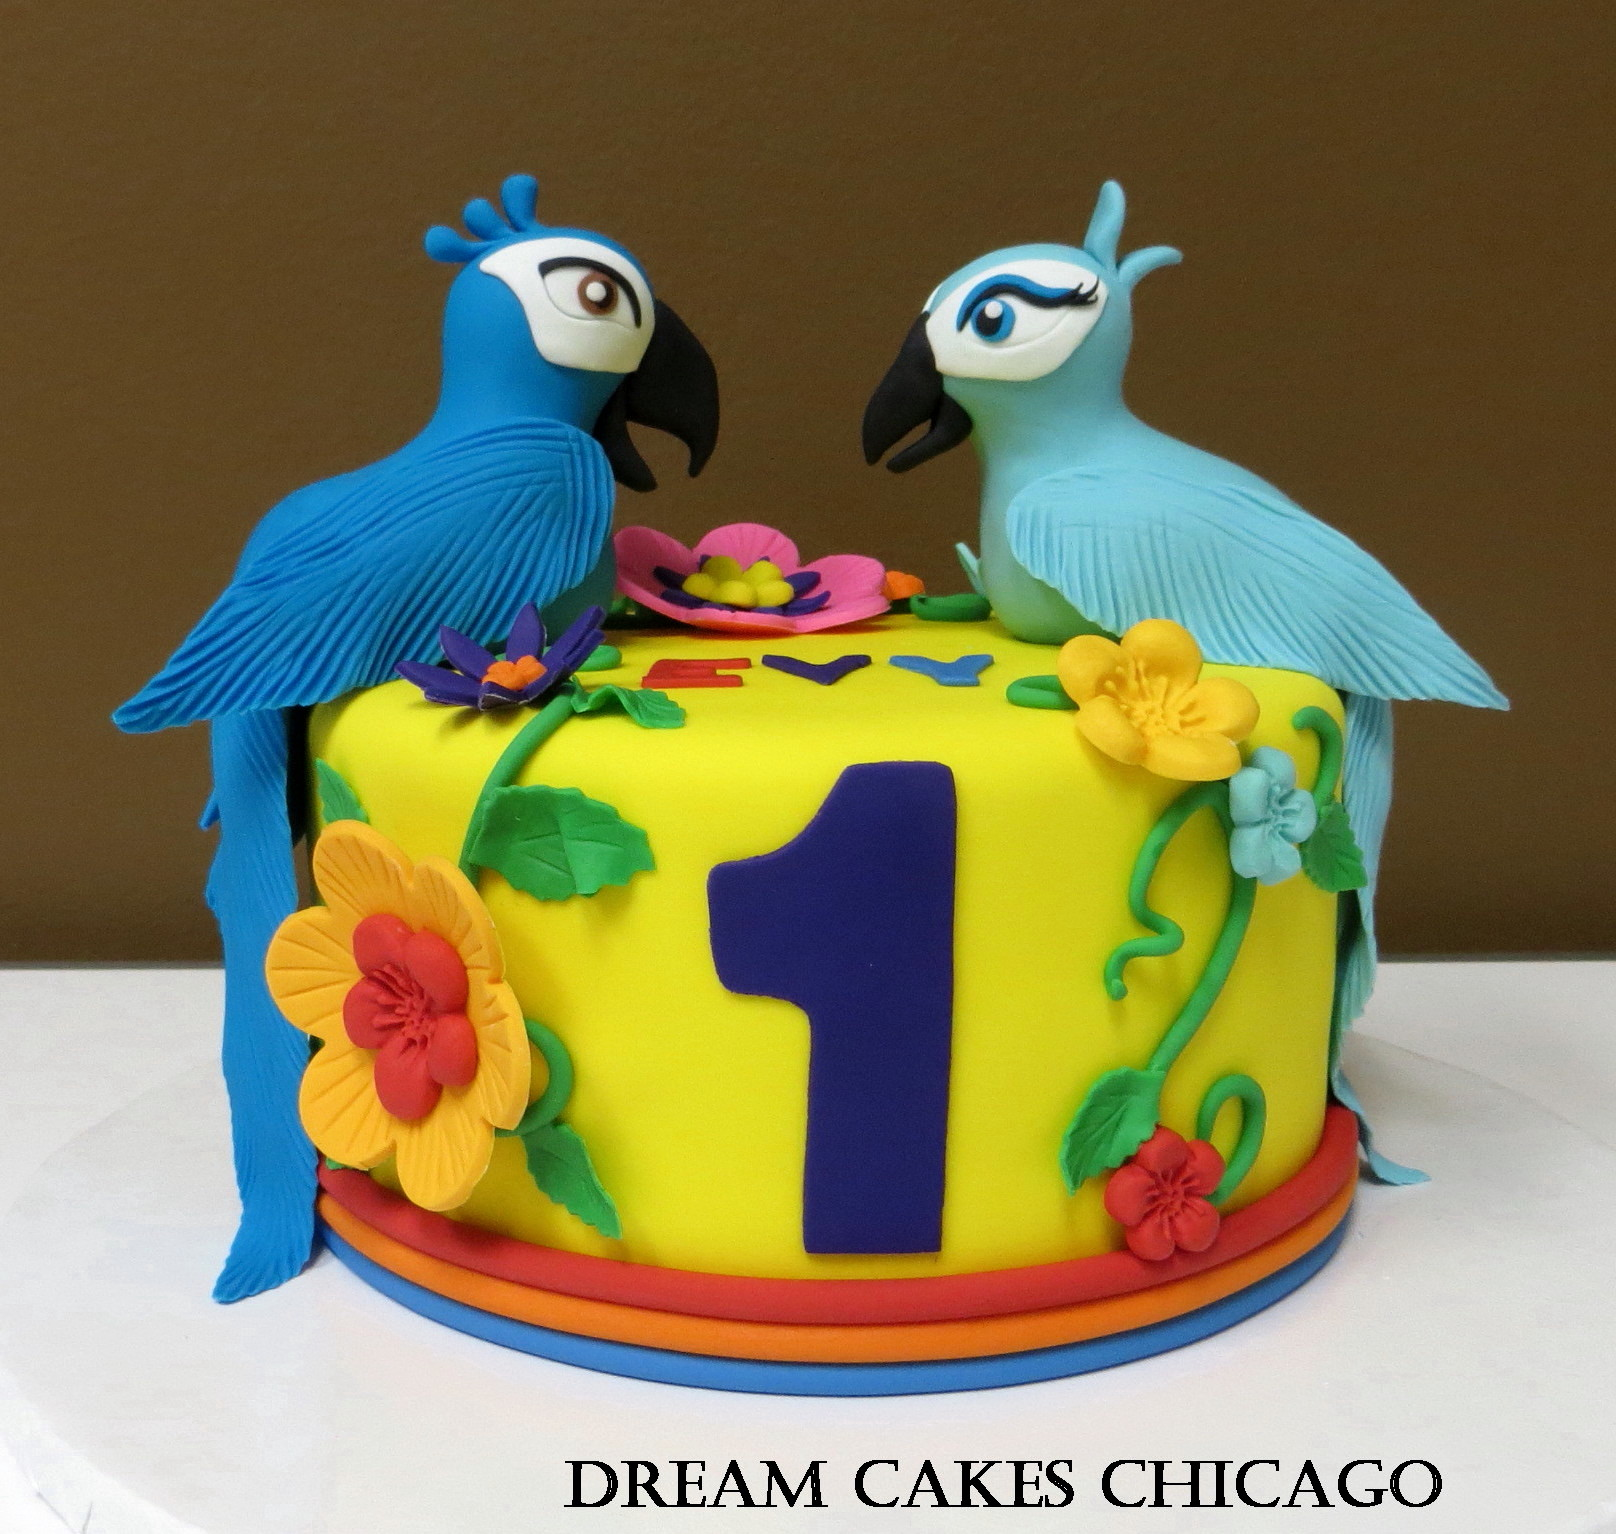 What dreams of dream cakes tell 25